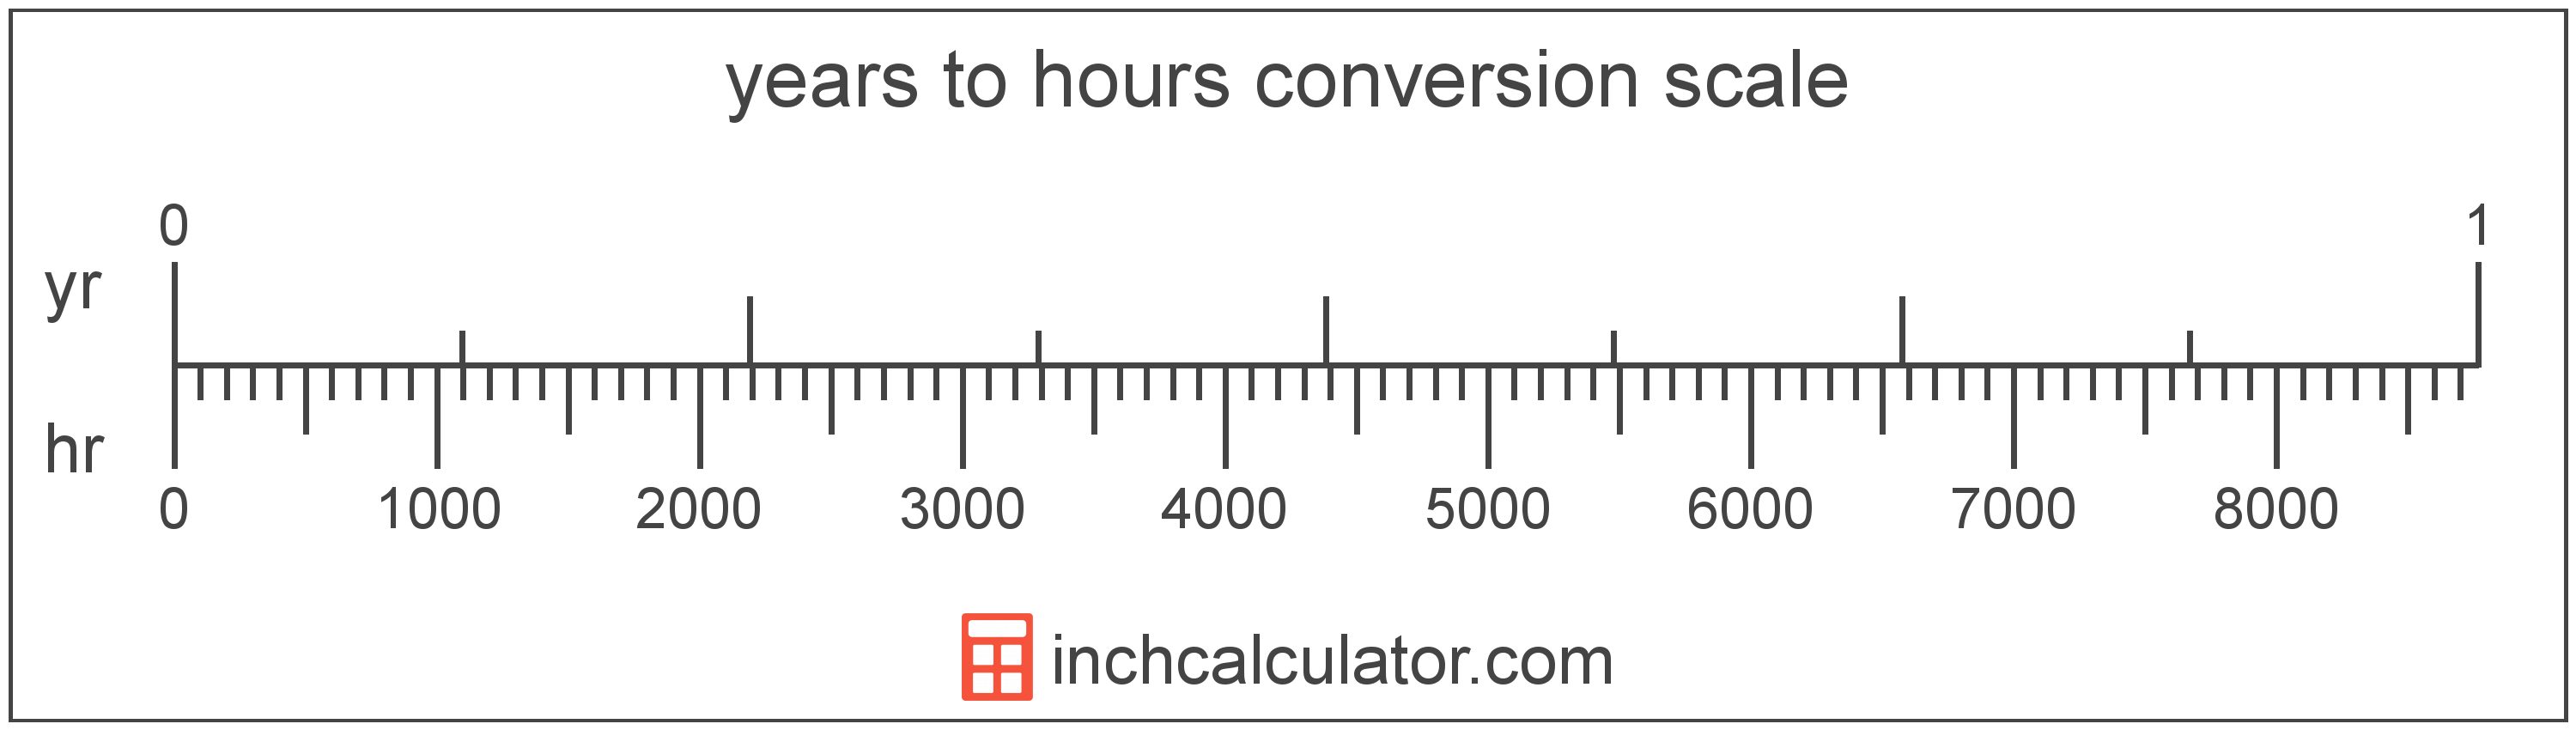 conversion scale showing years and equivalent hours time values